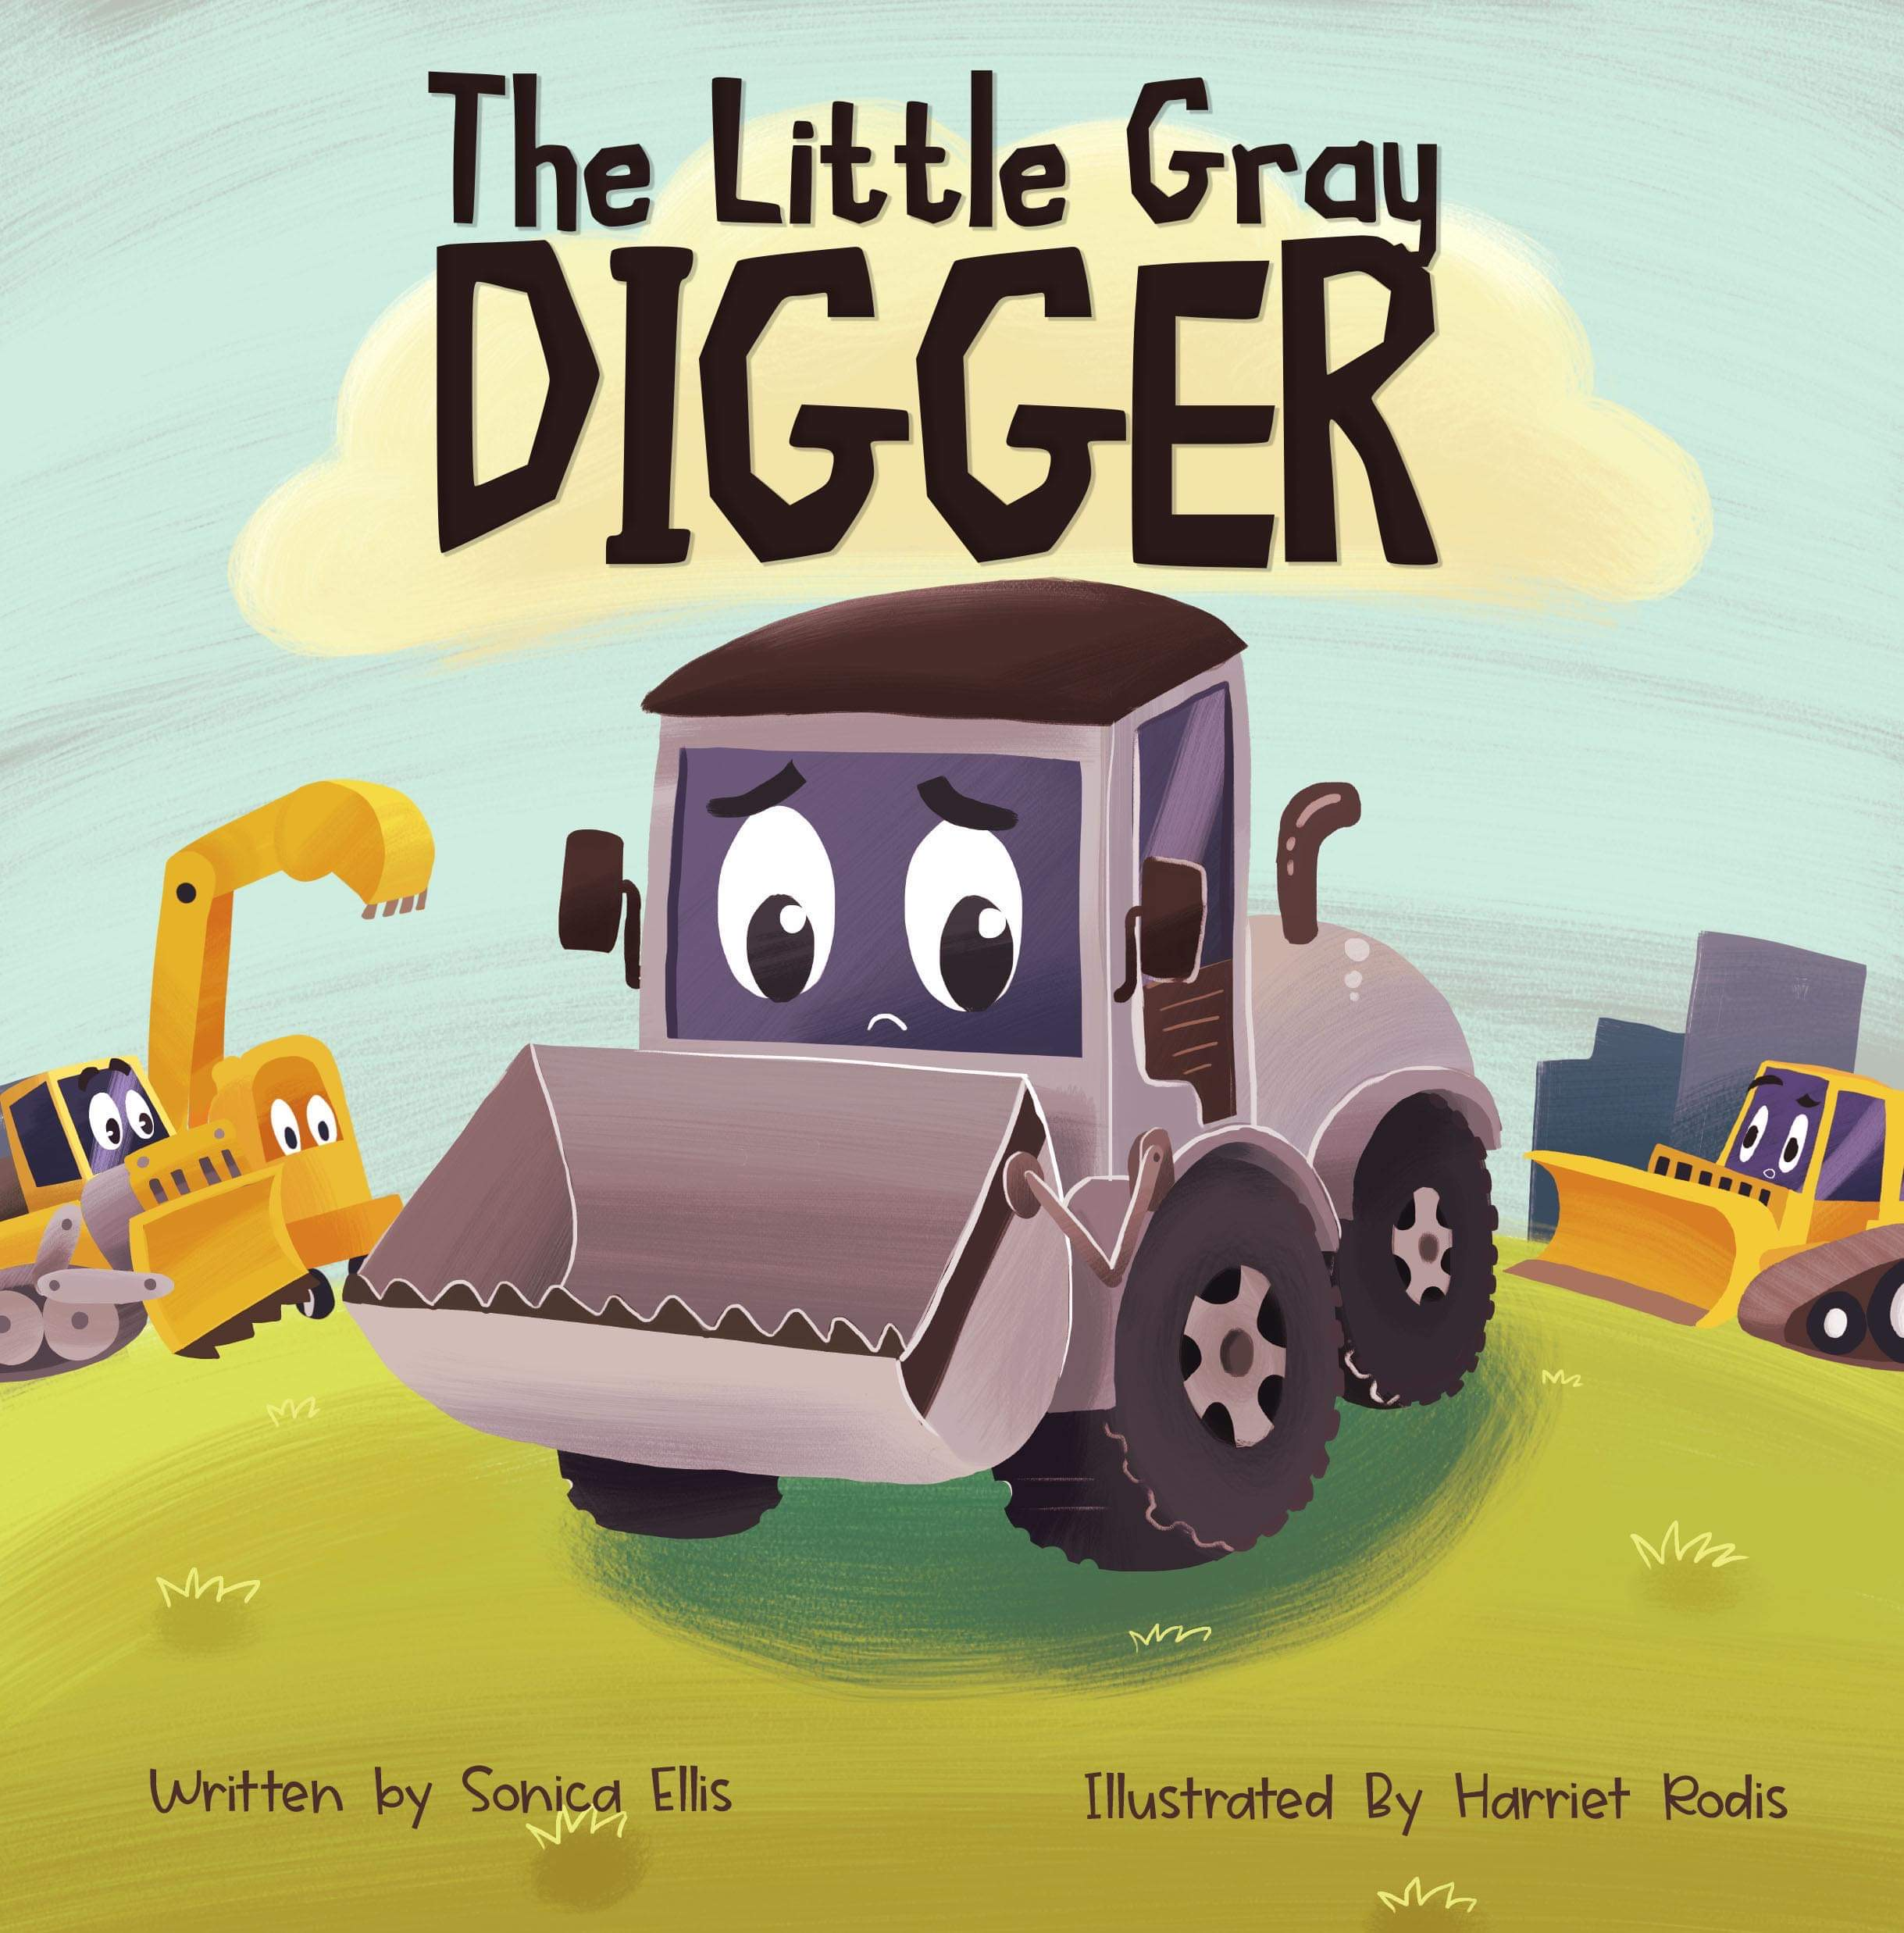 The Little Gray Digger: A children's book about inclusion, self-confidence and friendship